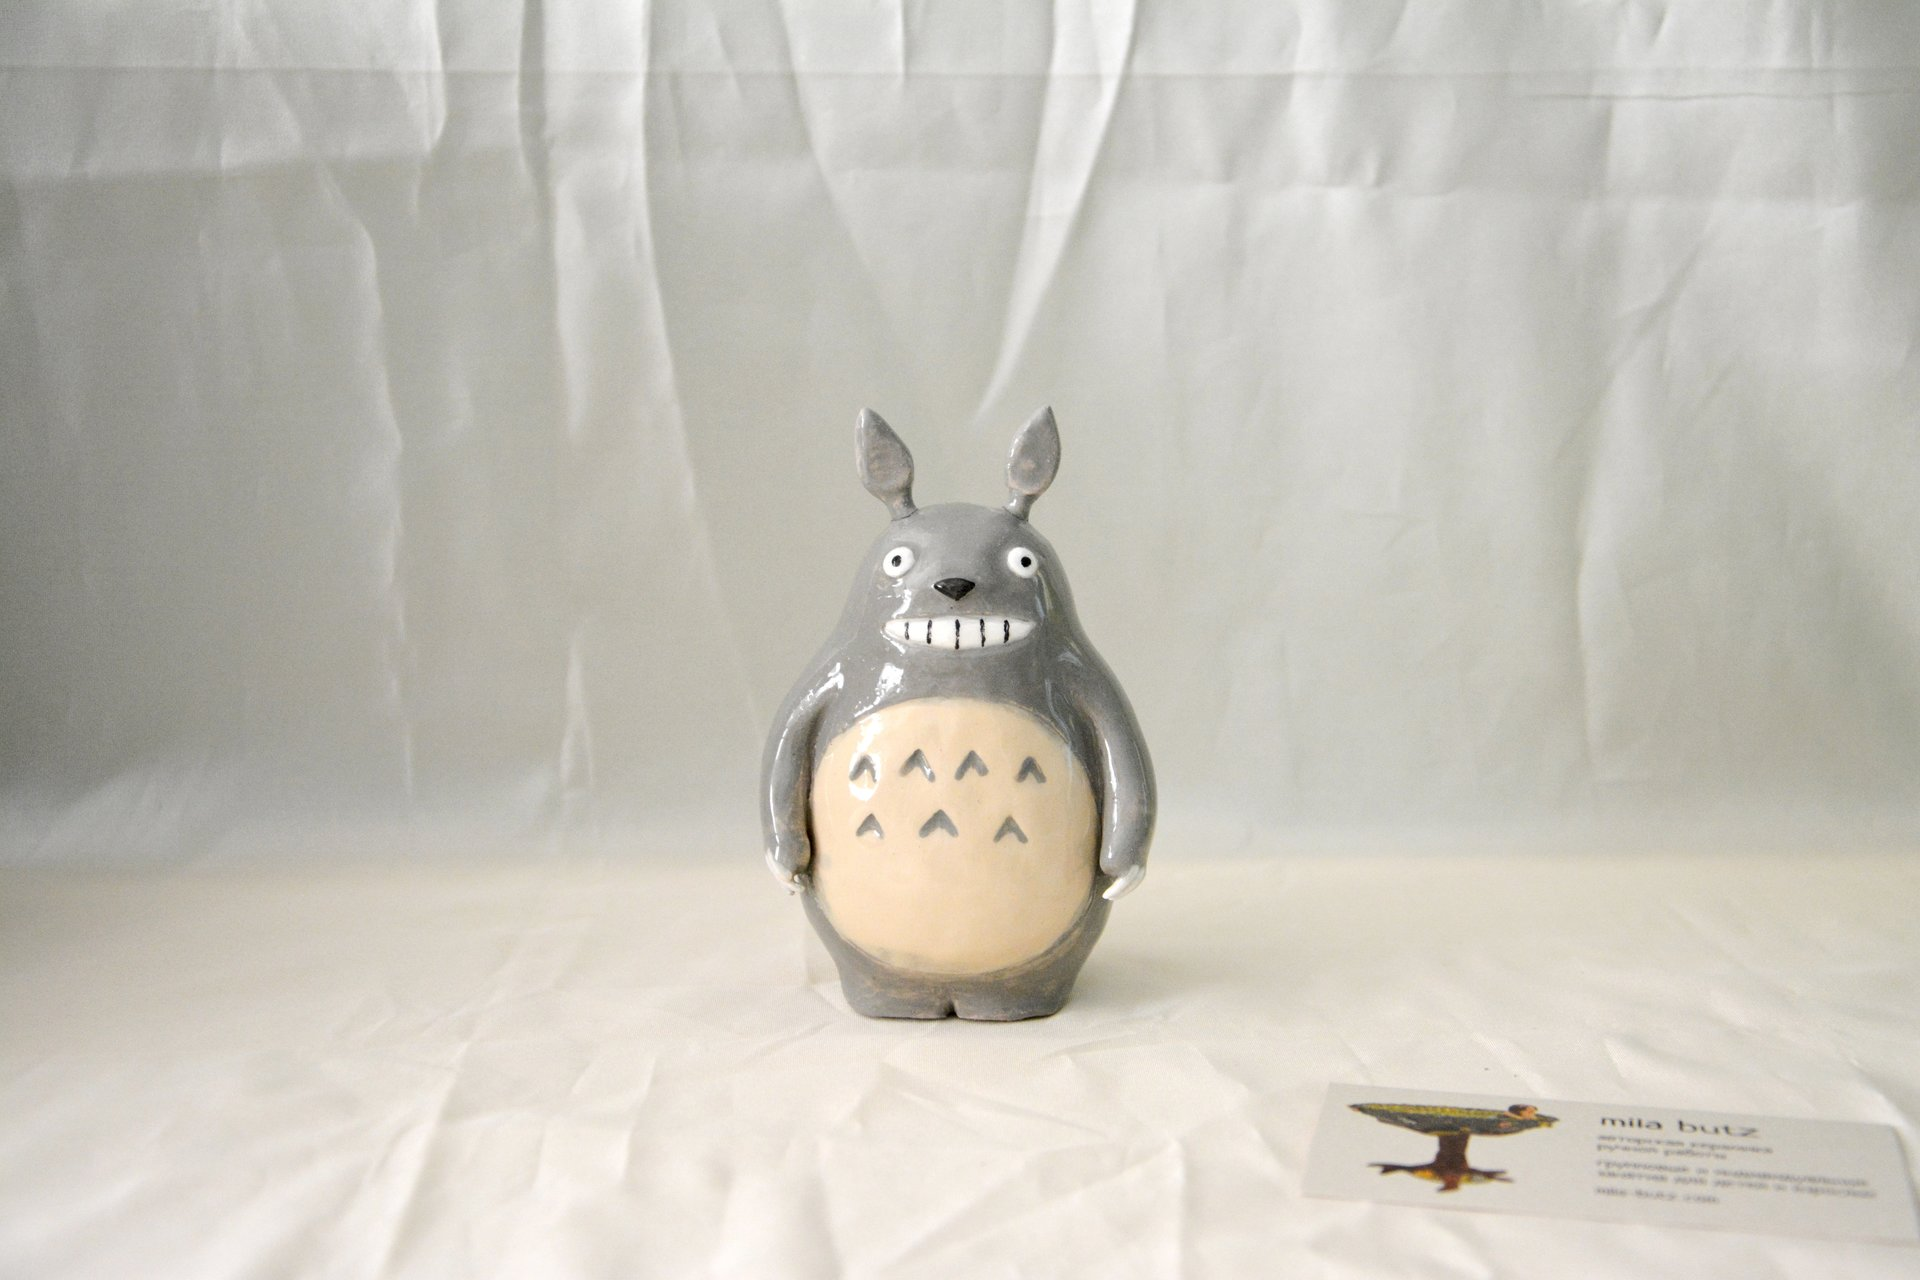 Ceramic figurine Totoro, height - 11 cm, photo 1 of 5.